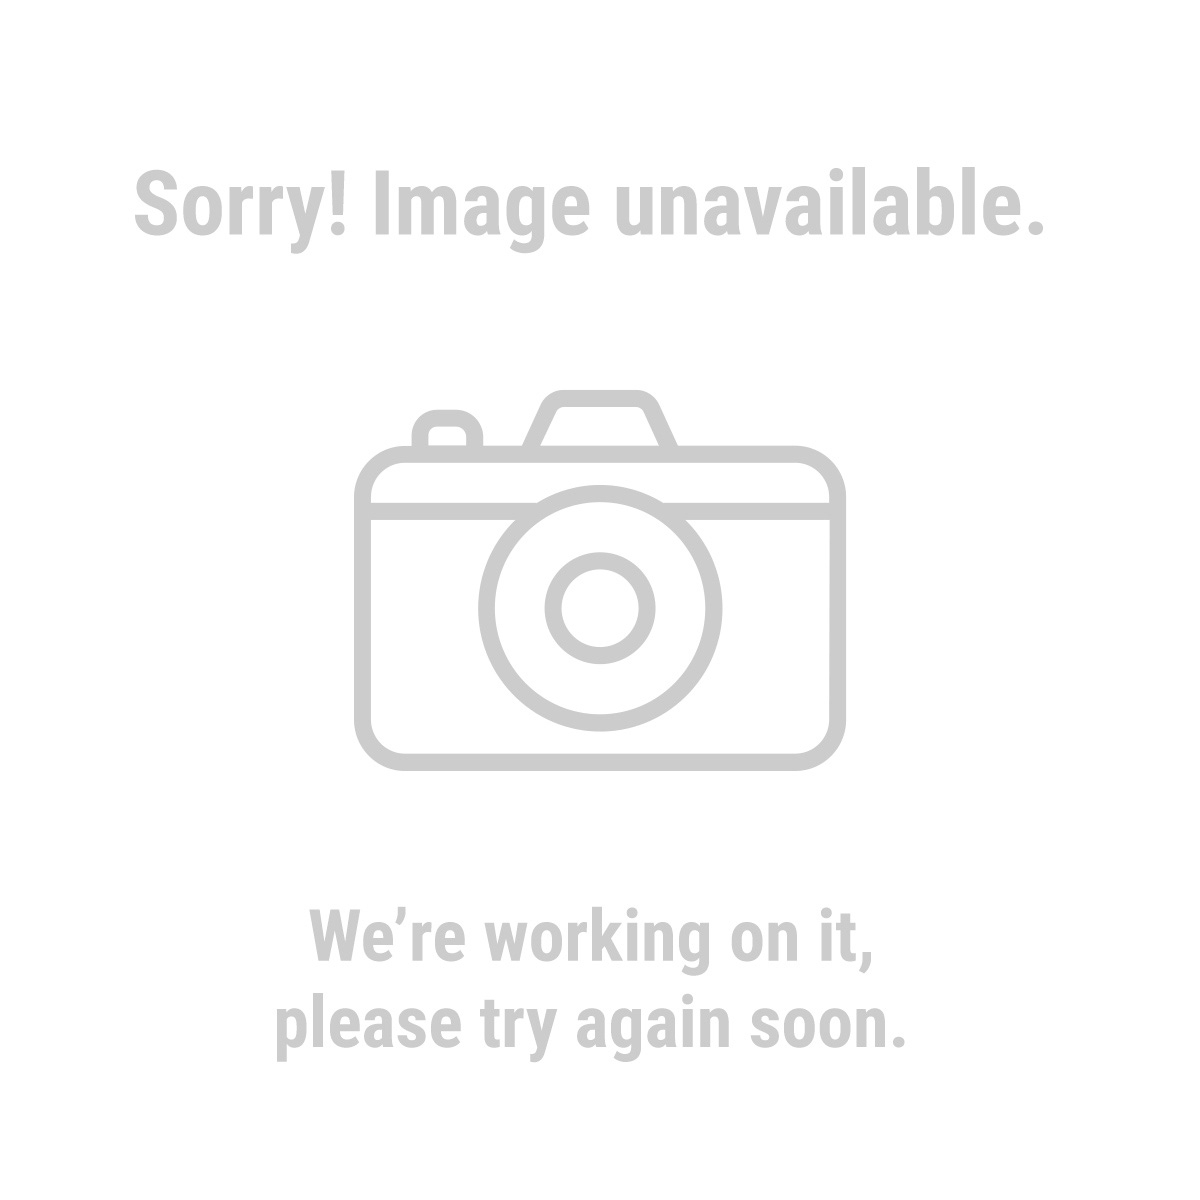 Harbor Freight Catalog : In composite xtreme torque air impact wrench